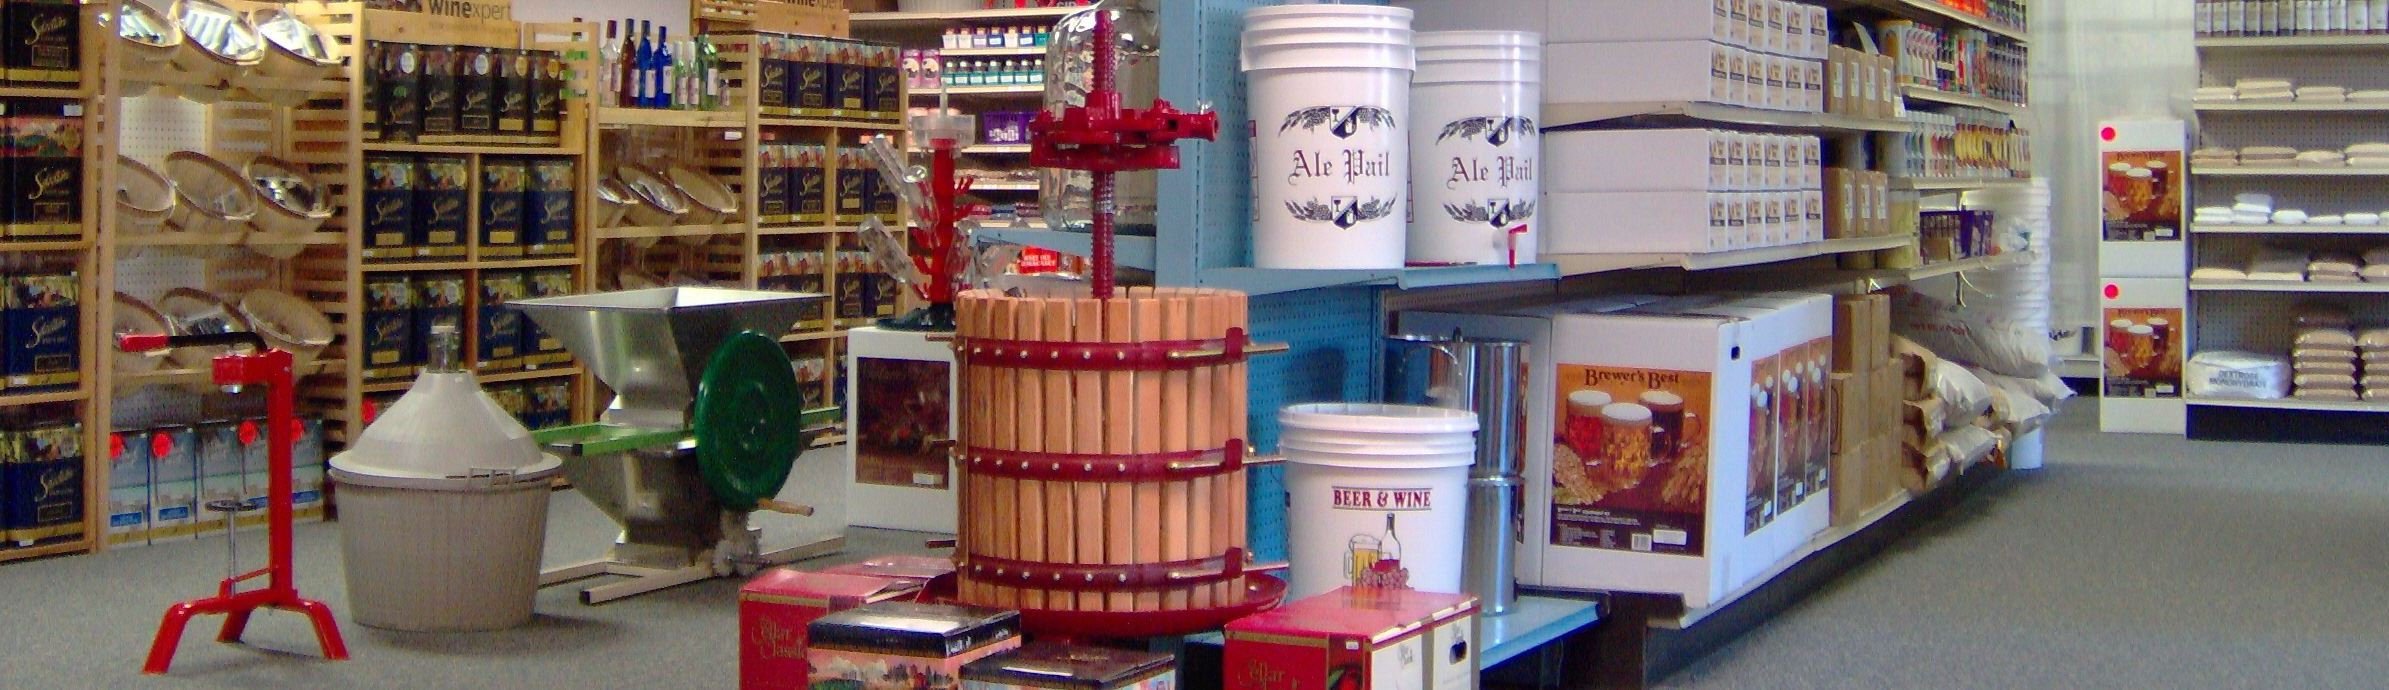 South Hills Brewing Kits and supplies for brewing at home